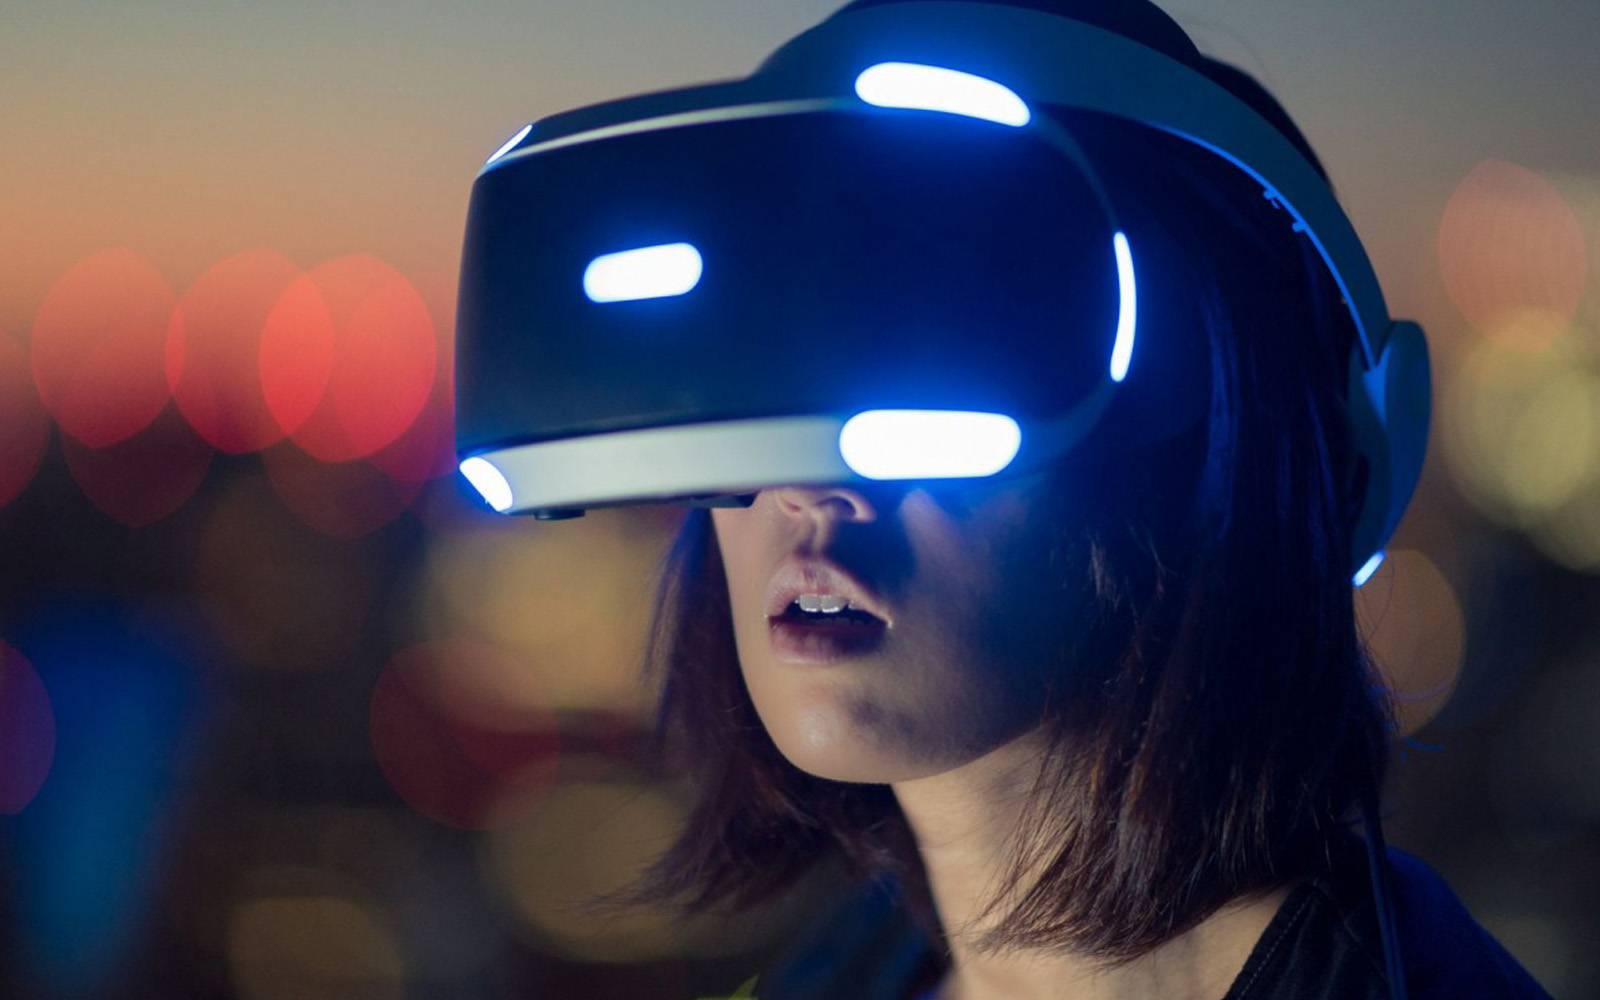 a2z-party-ny-virtual-reality-games-for-events-rental-2018-16x9-1h